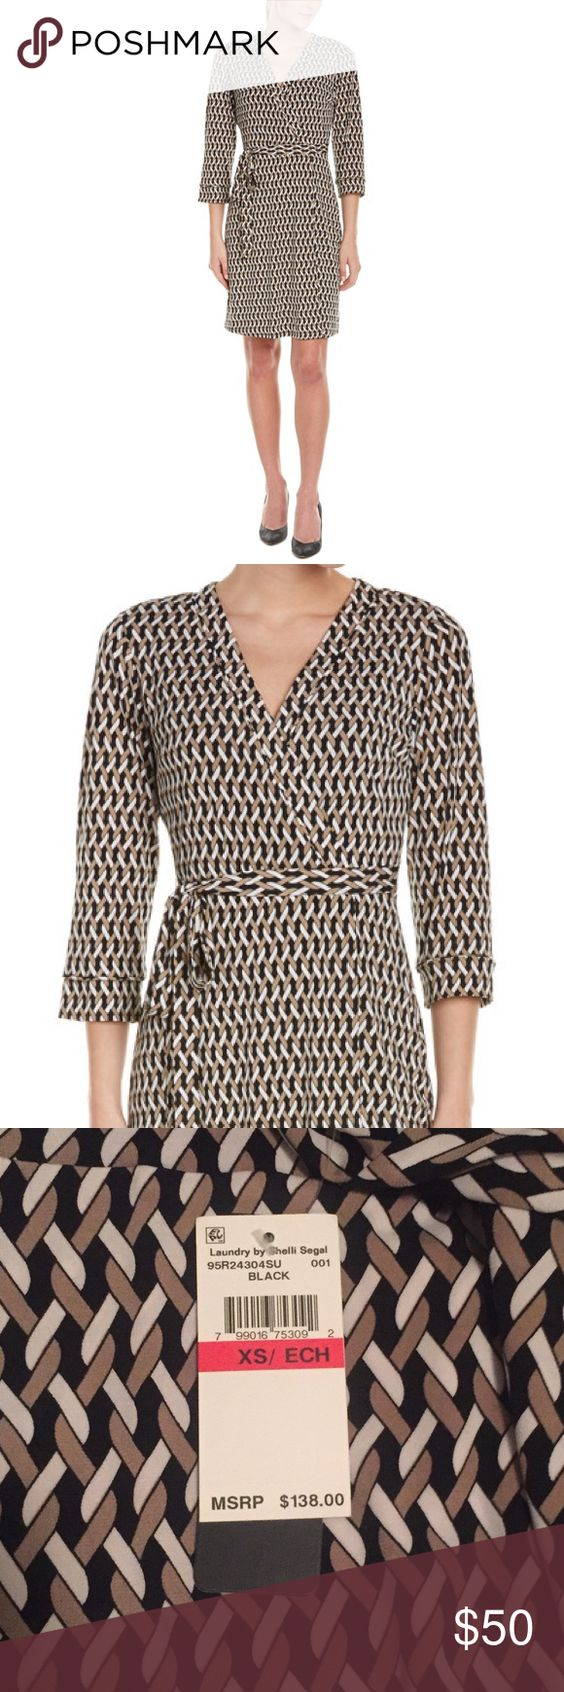 NWT Laundry by Shelli Segal Faux Wrap Dress Brand new with tags. Laundry by Shelli Segal Faux Wrap Dress. Size: X-Small. Retails for $138. Laundry by Shelli Segal Dresses